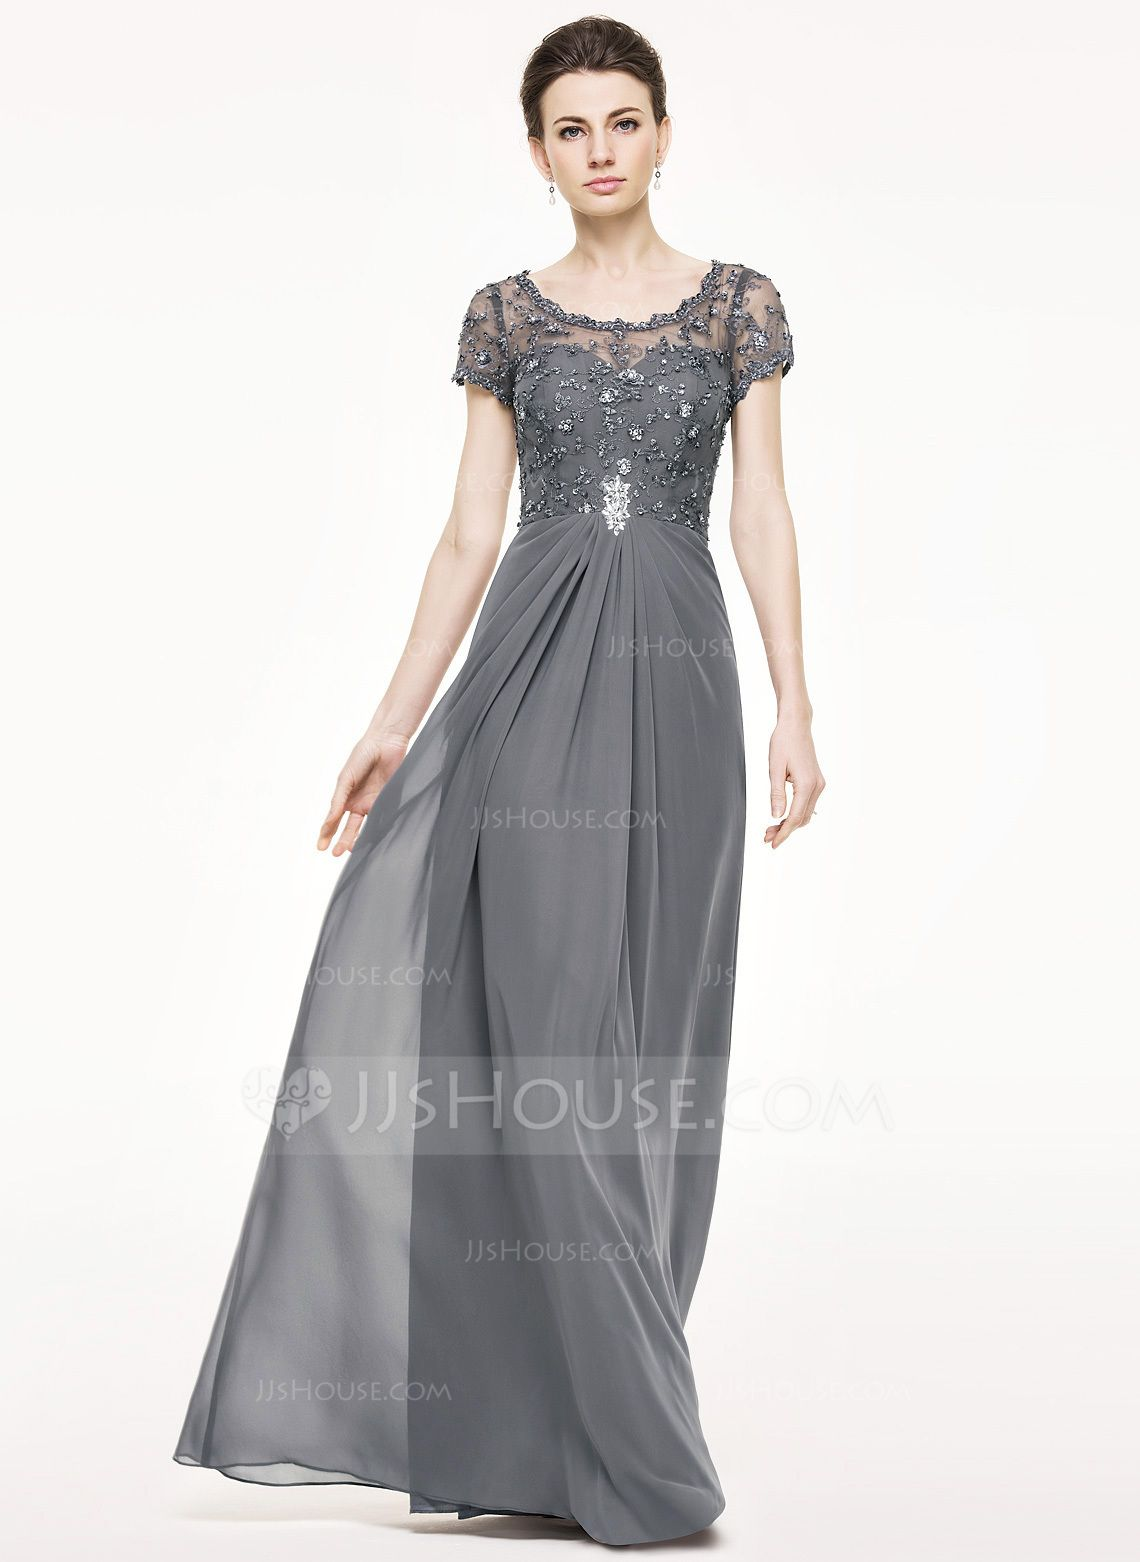 633ded41d90 A-Line Princess Scoop Neck Floor-Length Chiffon Lace Mother of the Bride  Dress With Ruffle Beading Sequins (008062532) - JJsHouse